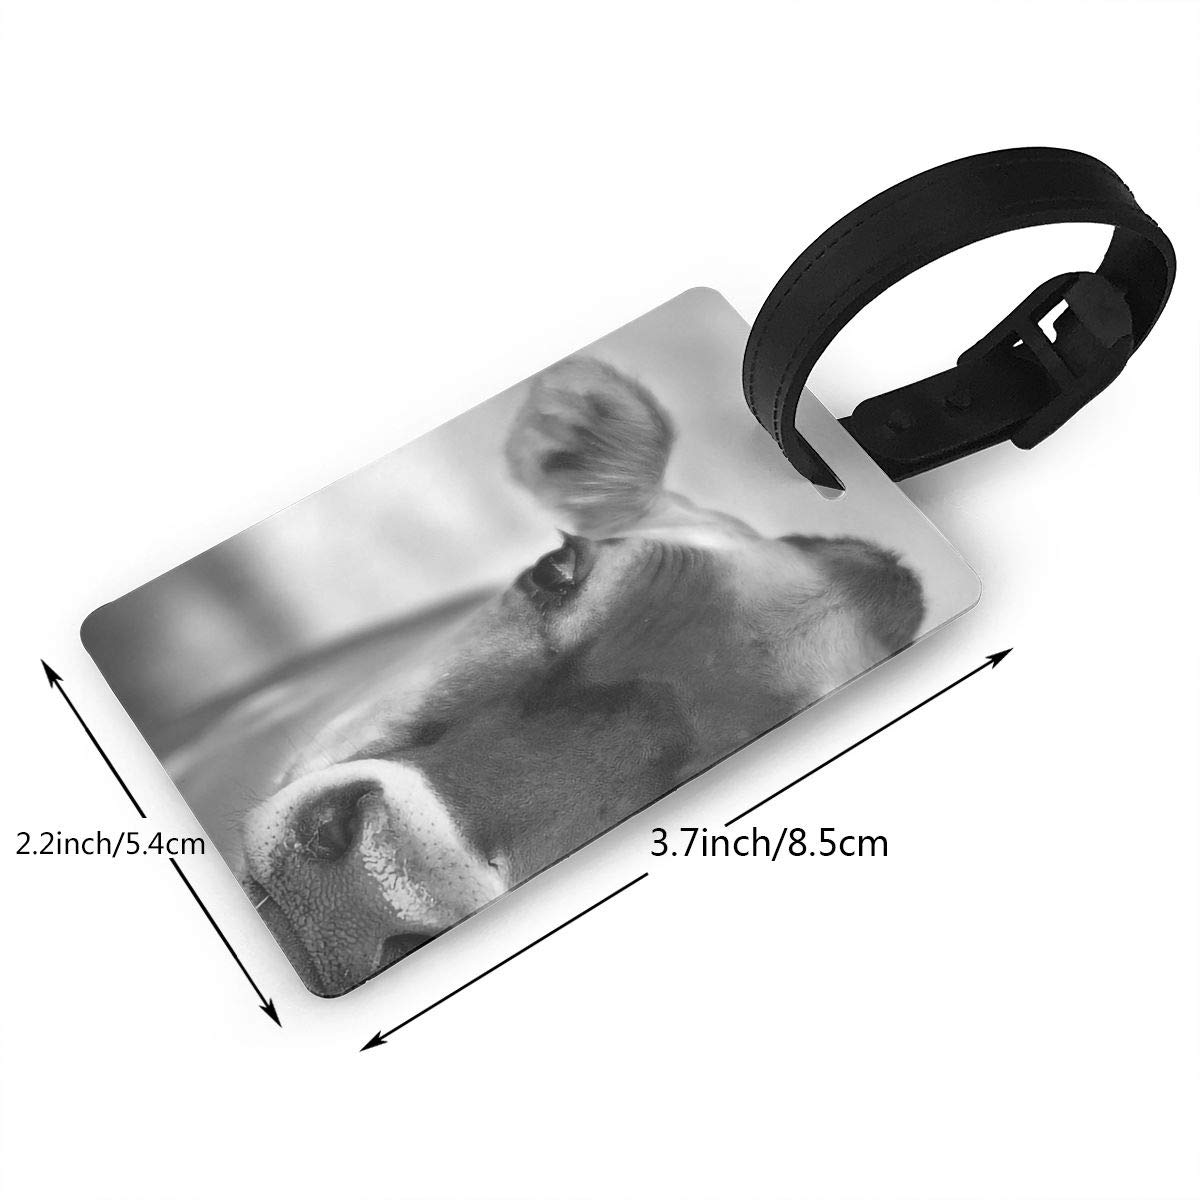 Cow Handbag Tag For Travel Tags Accessories 2 Pack Luggage Tags